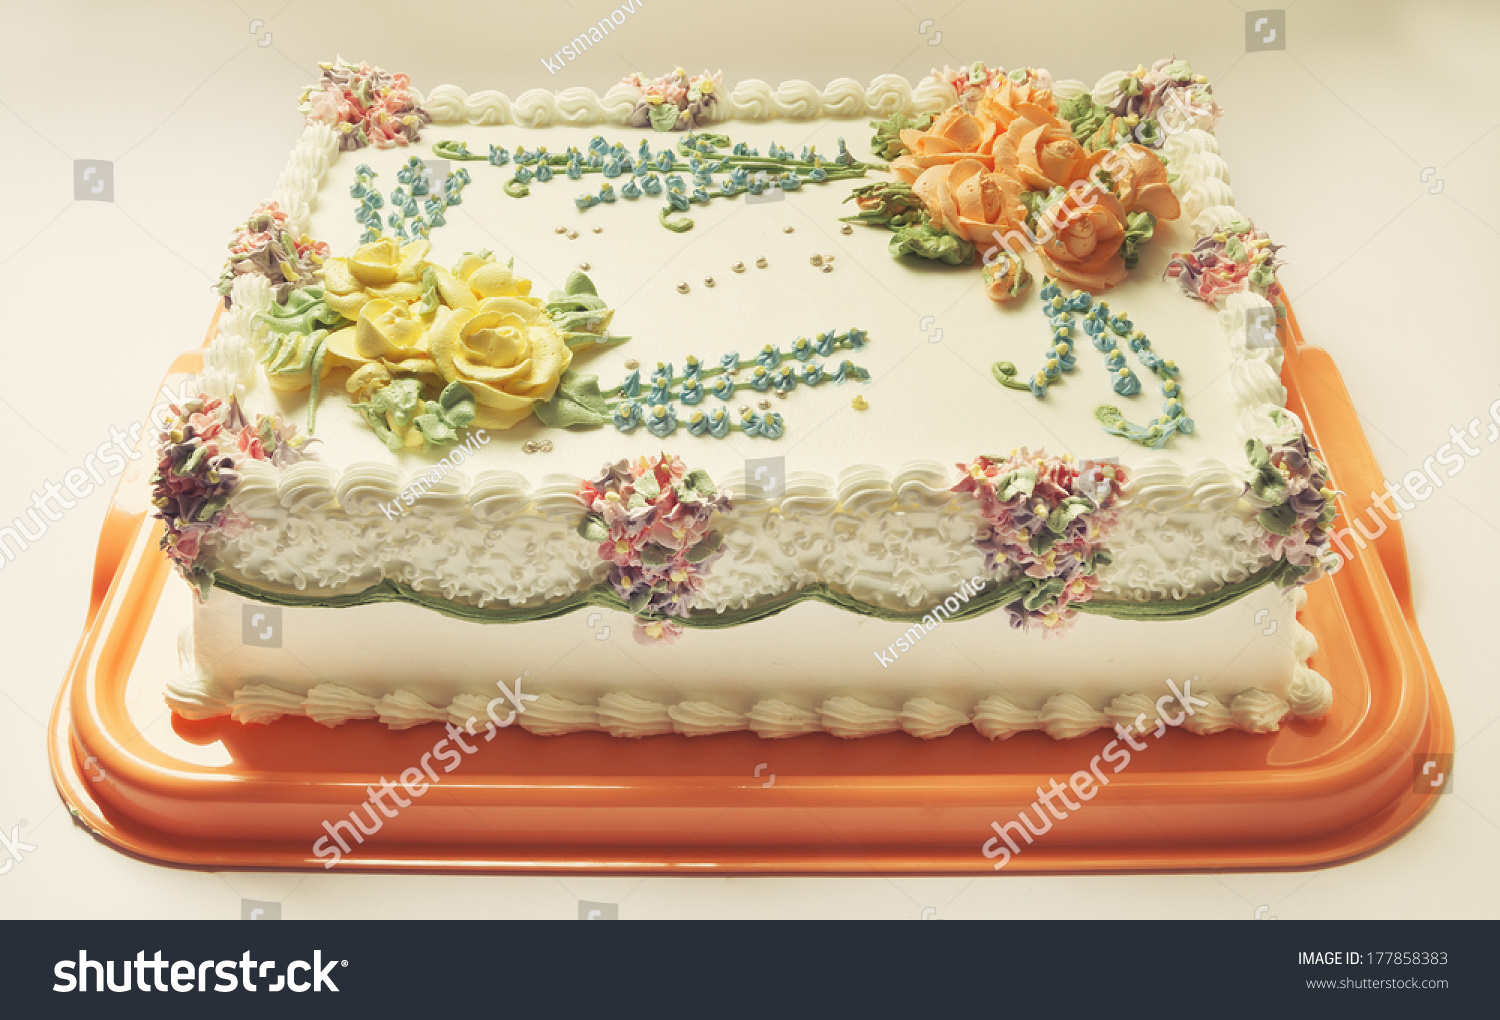 Classical Birthday Cake Design With A Lot Of Flowers Cream